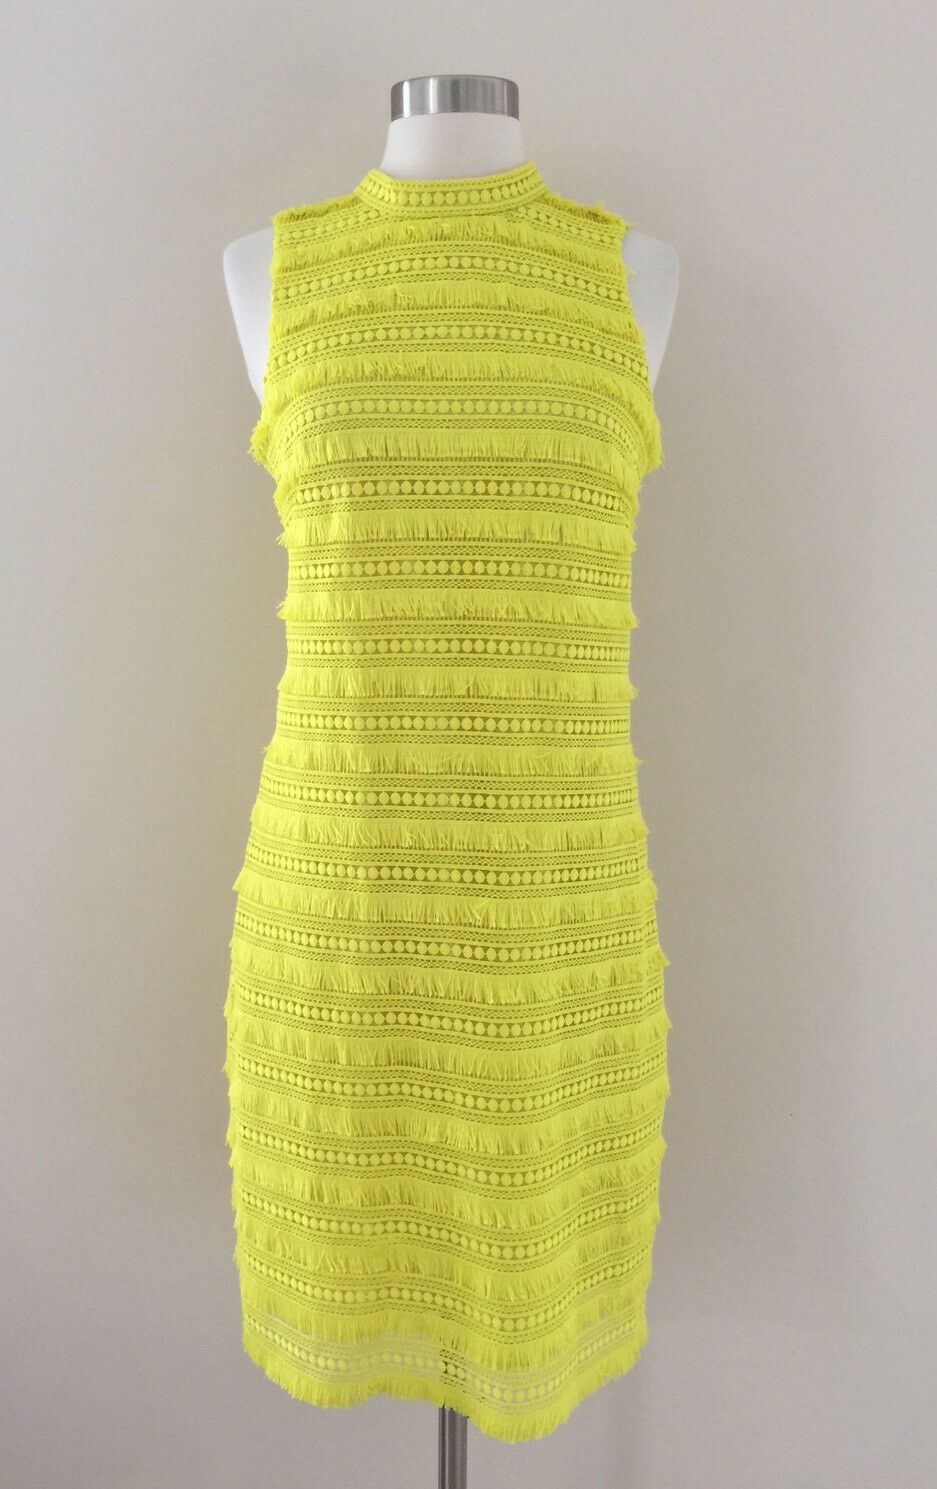 New Jcrew Sheath dress in fringy lace Bright Citron Yellow G2399 2T SPRING 2017